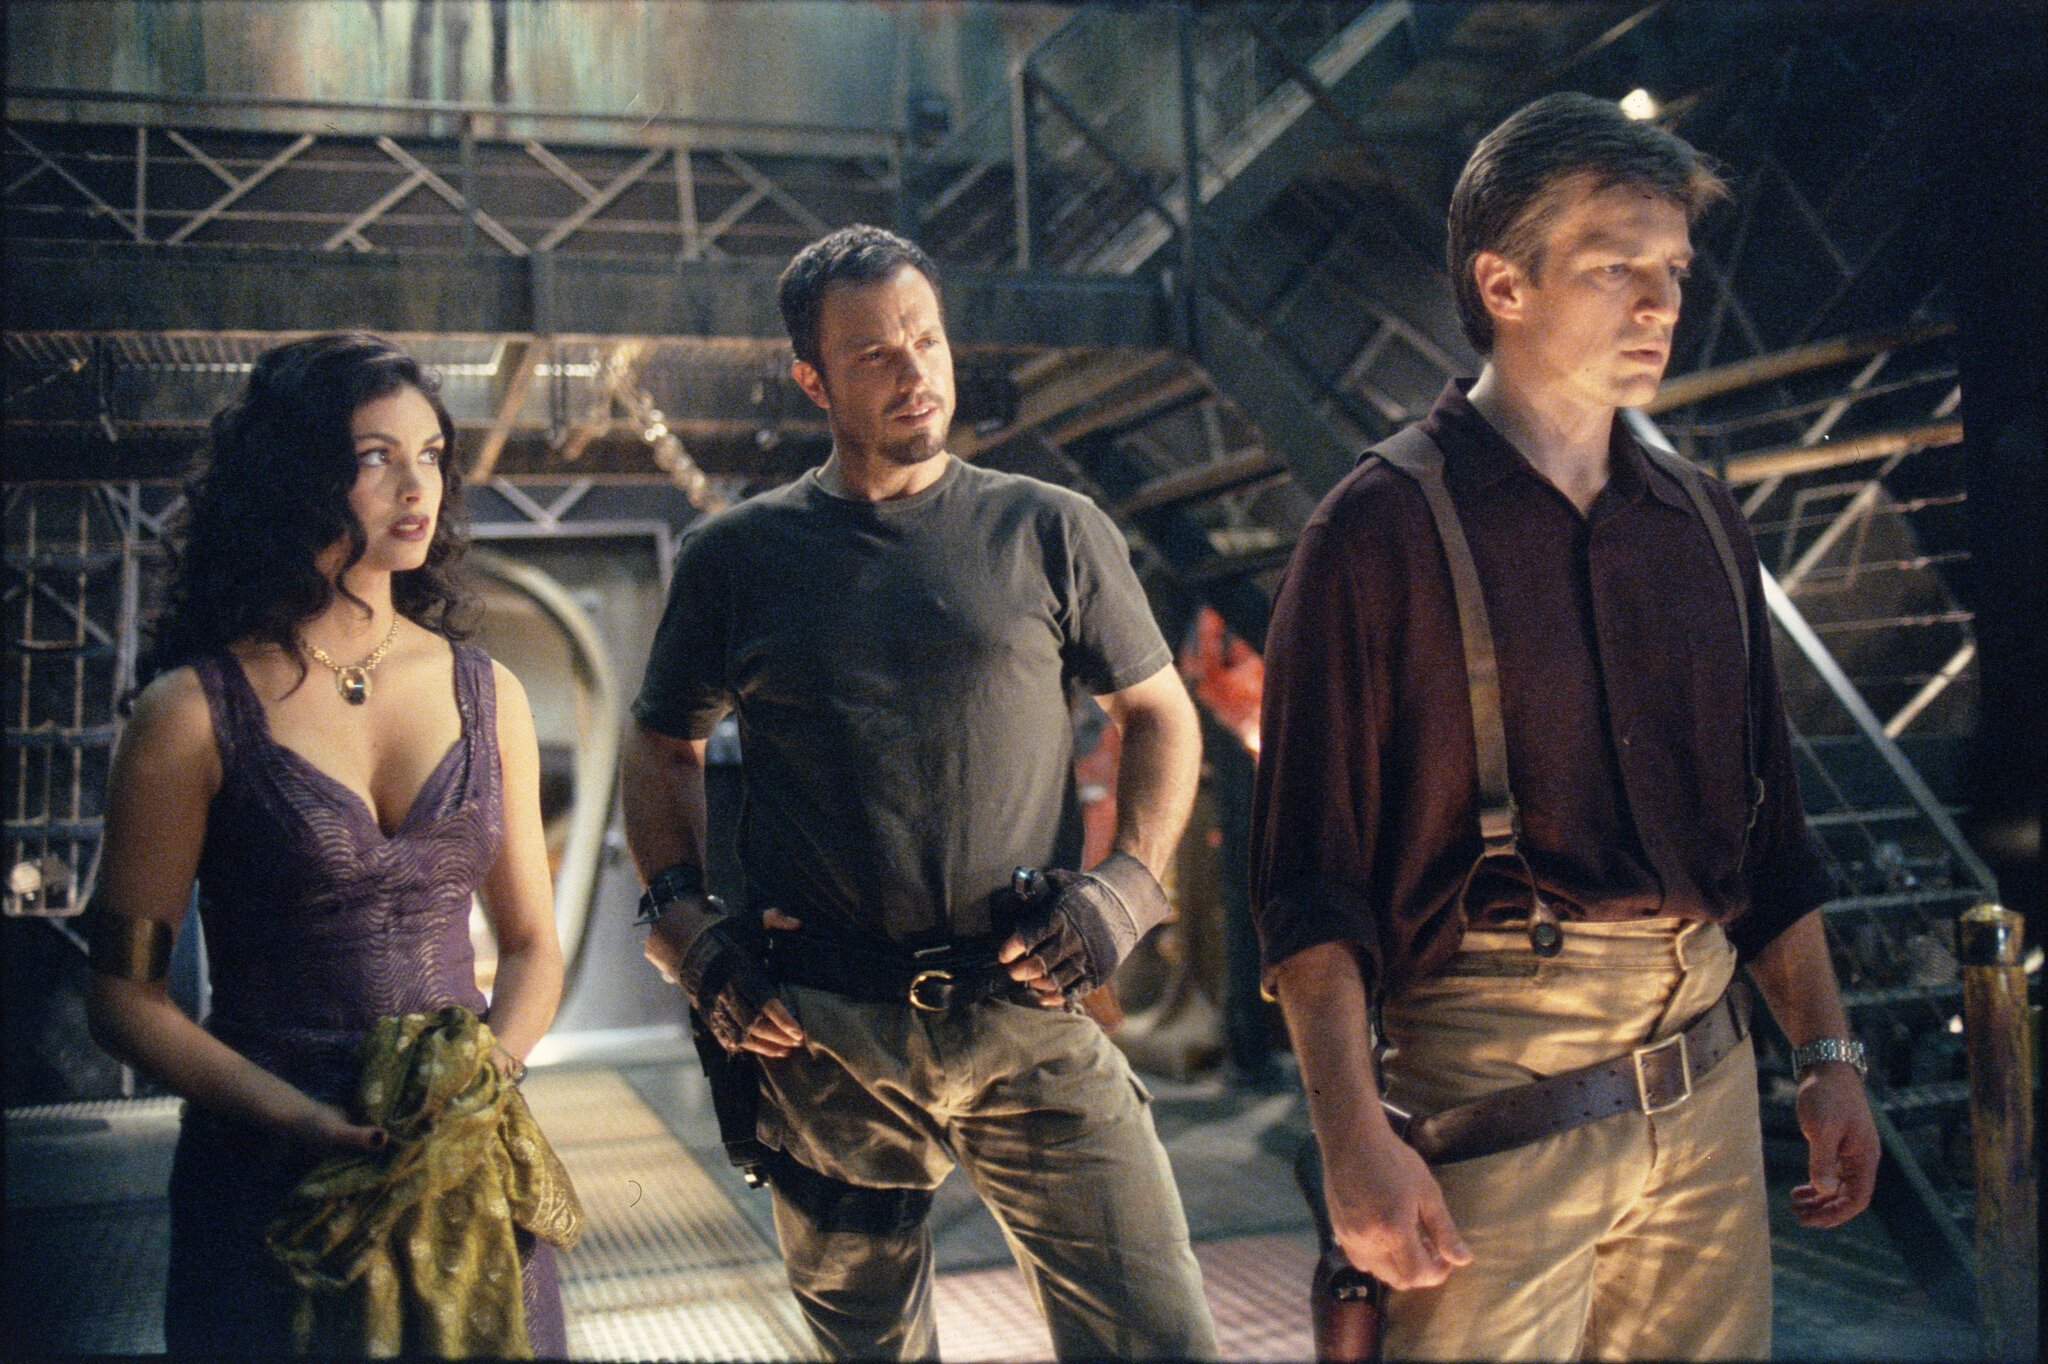 29comfort firefly superJumbo Blake's 7: 10 Things You Never Knew About The Classic Sci-Fi TV Show